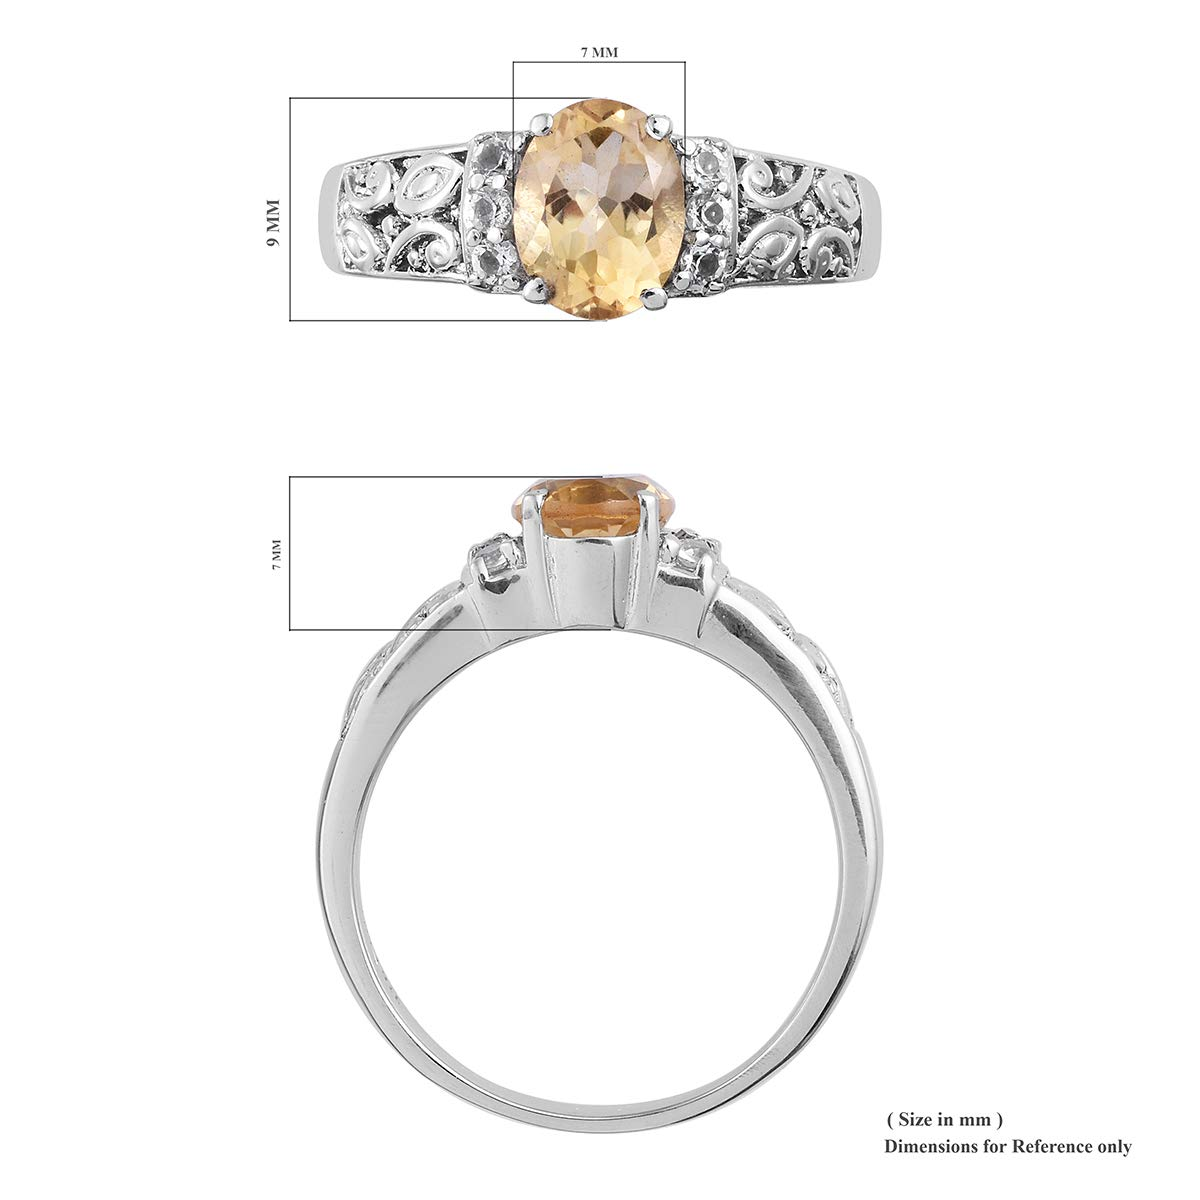 Shop LC Delivering Joy Solitaire Ring Stainless Steel Citrine White Topaz Gift Jewelry for Women Size 5 Cttw 1.6